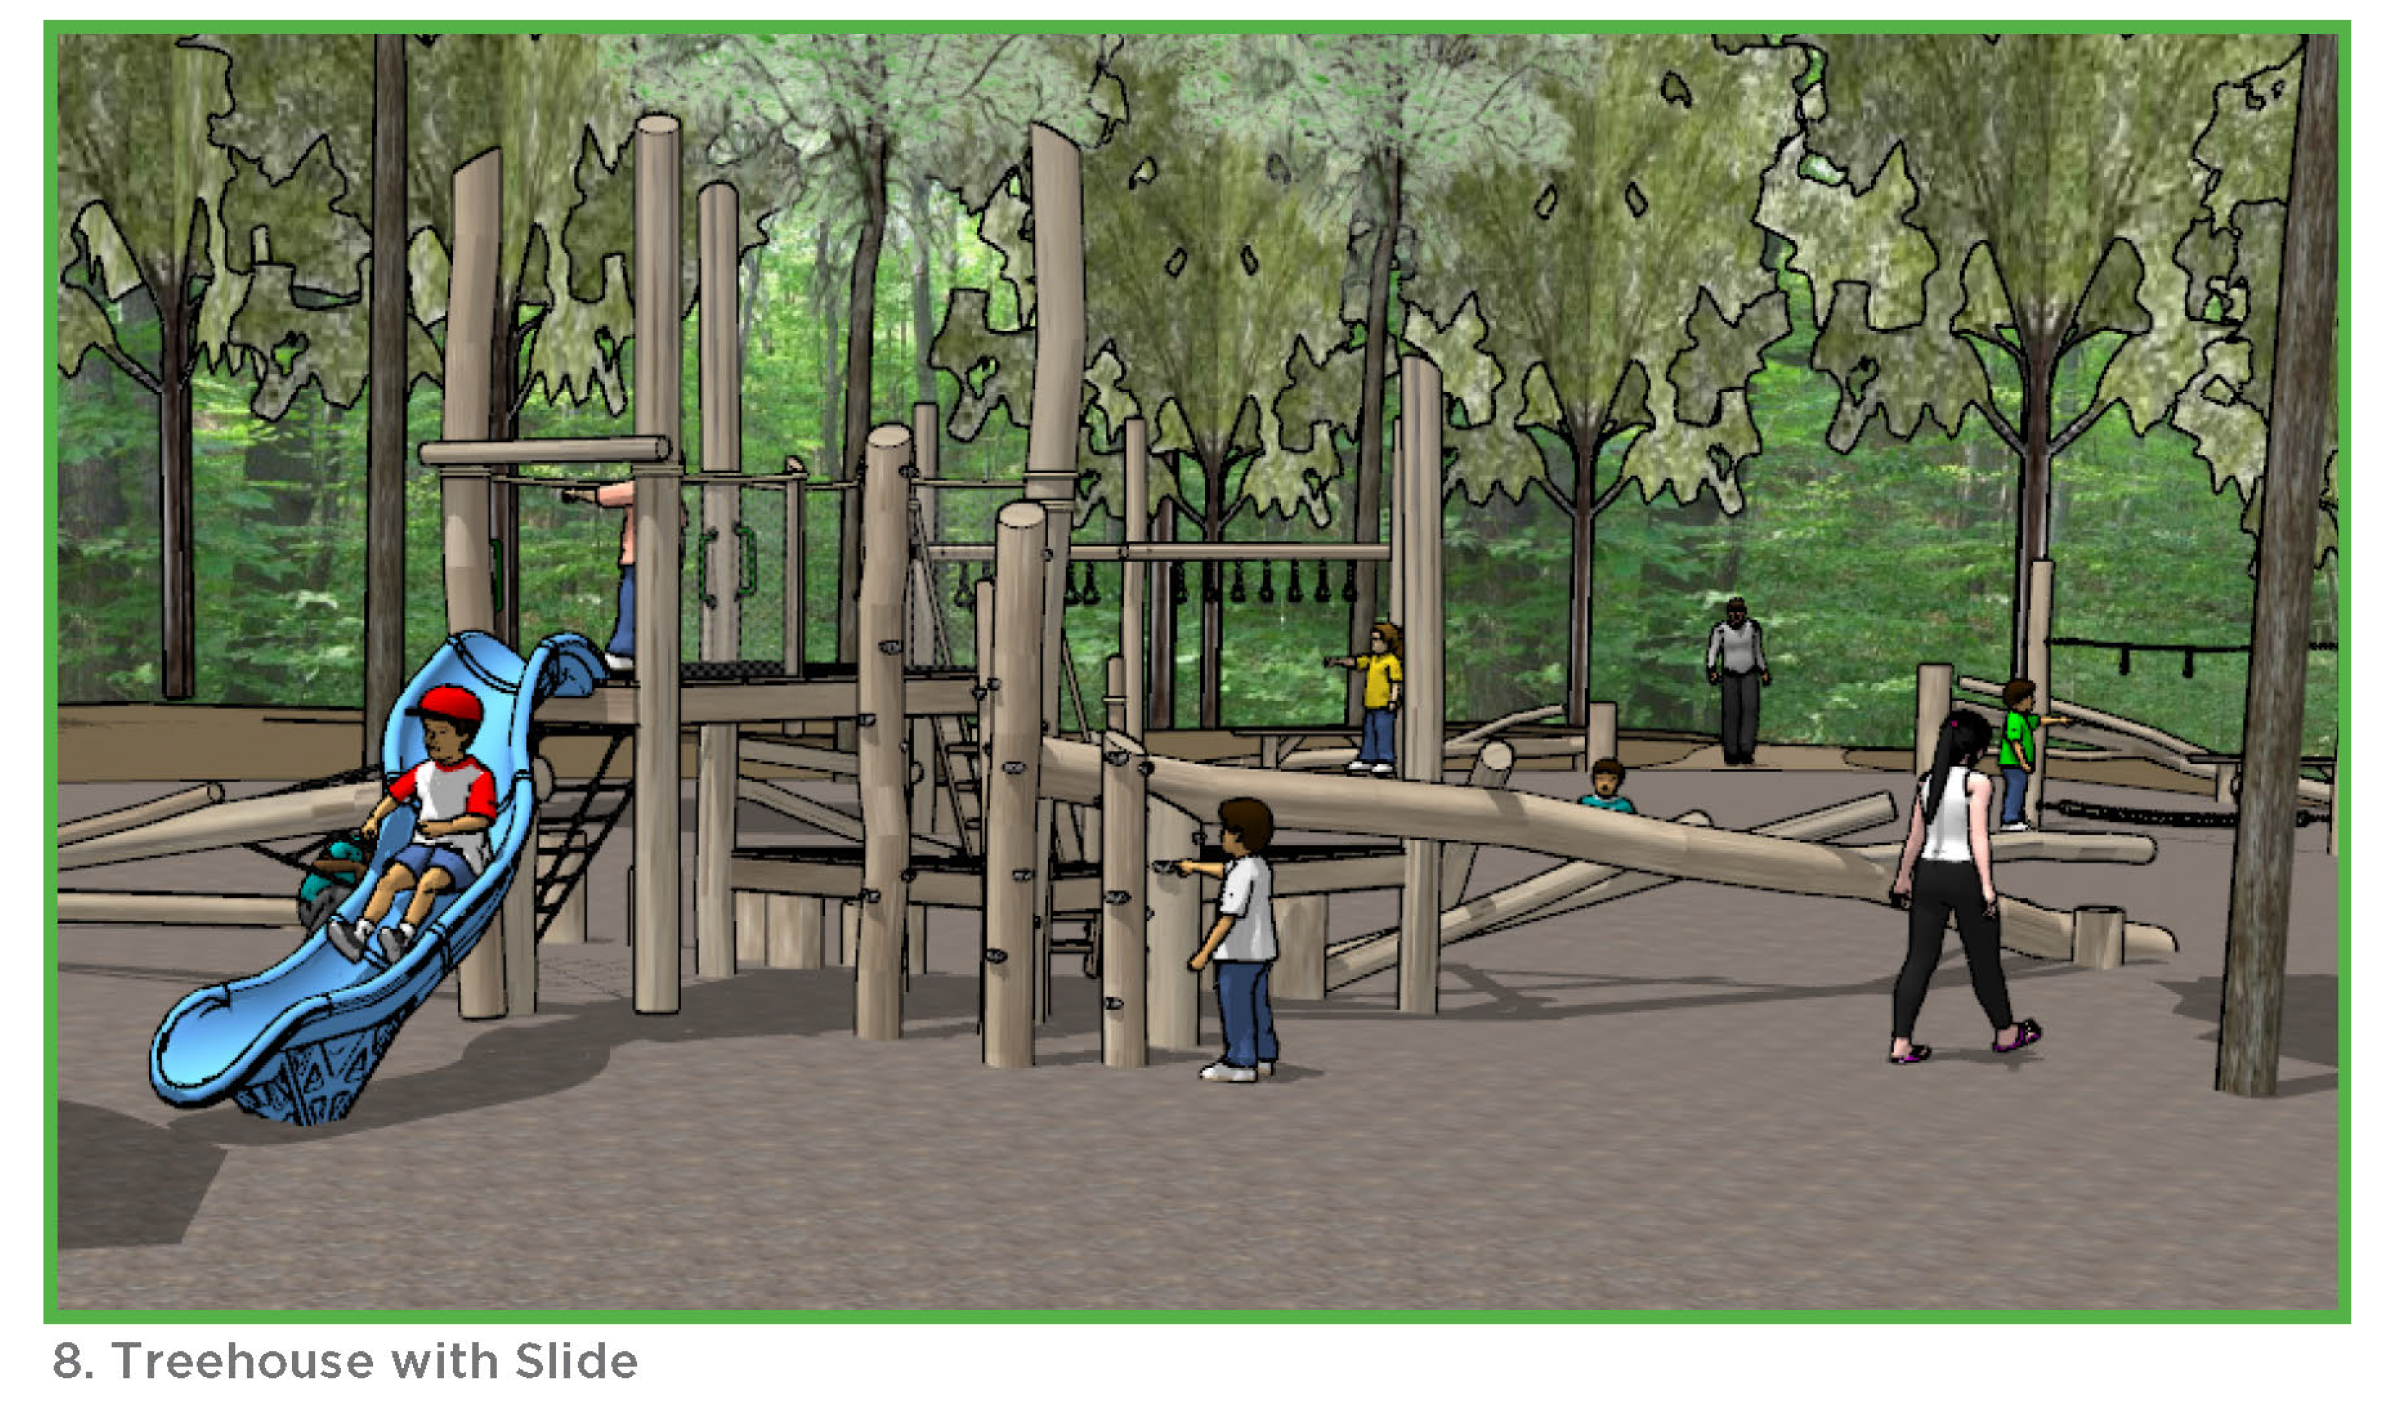 Photo of the treehouse with slide.